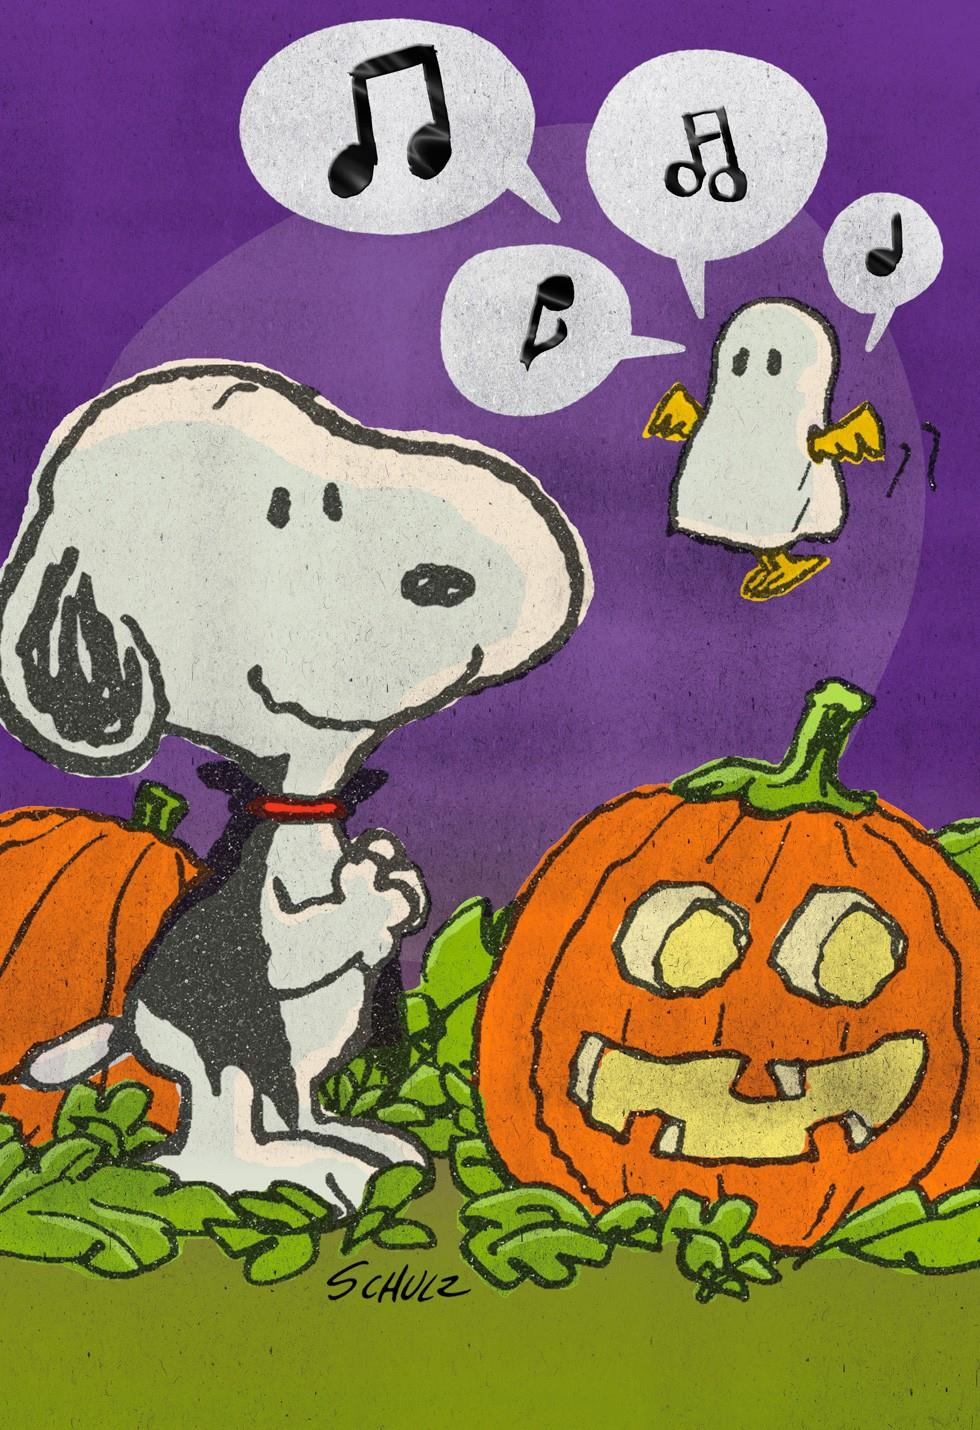 Photo Christmas Card Ideas For Grandparents - Snoopy And Woodstock Wish You  Tweets Halloween Card